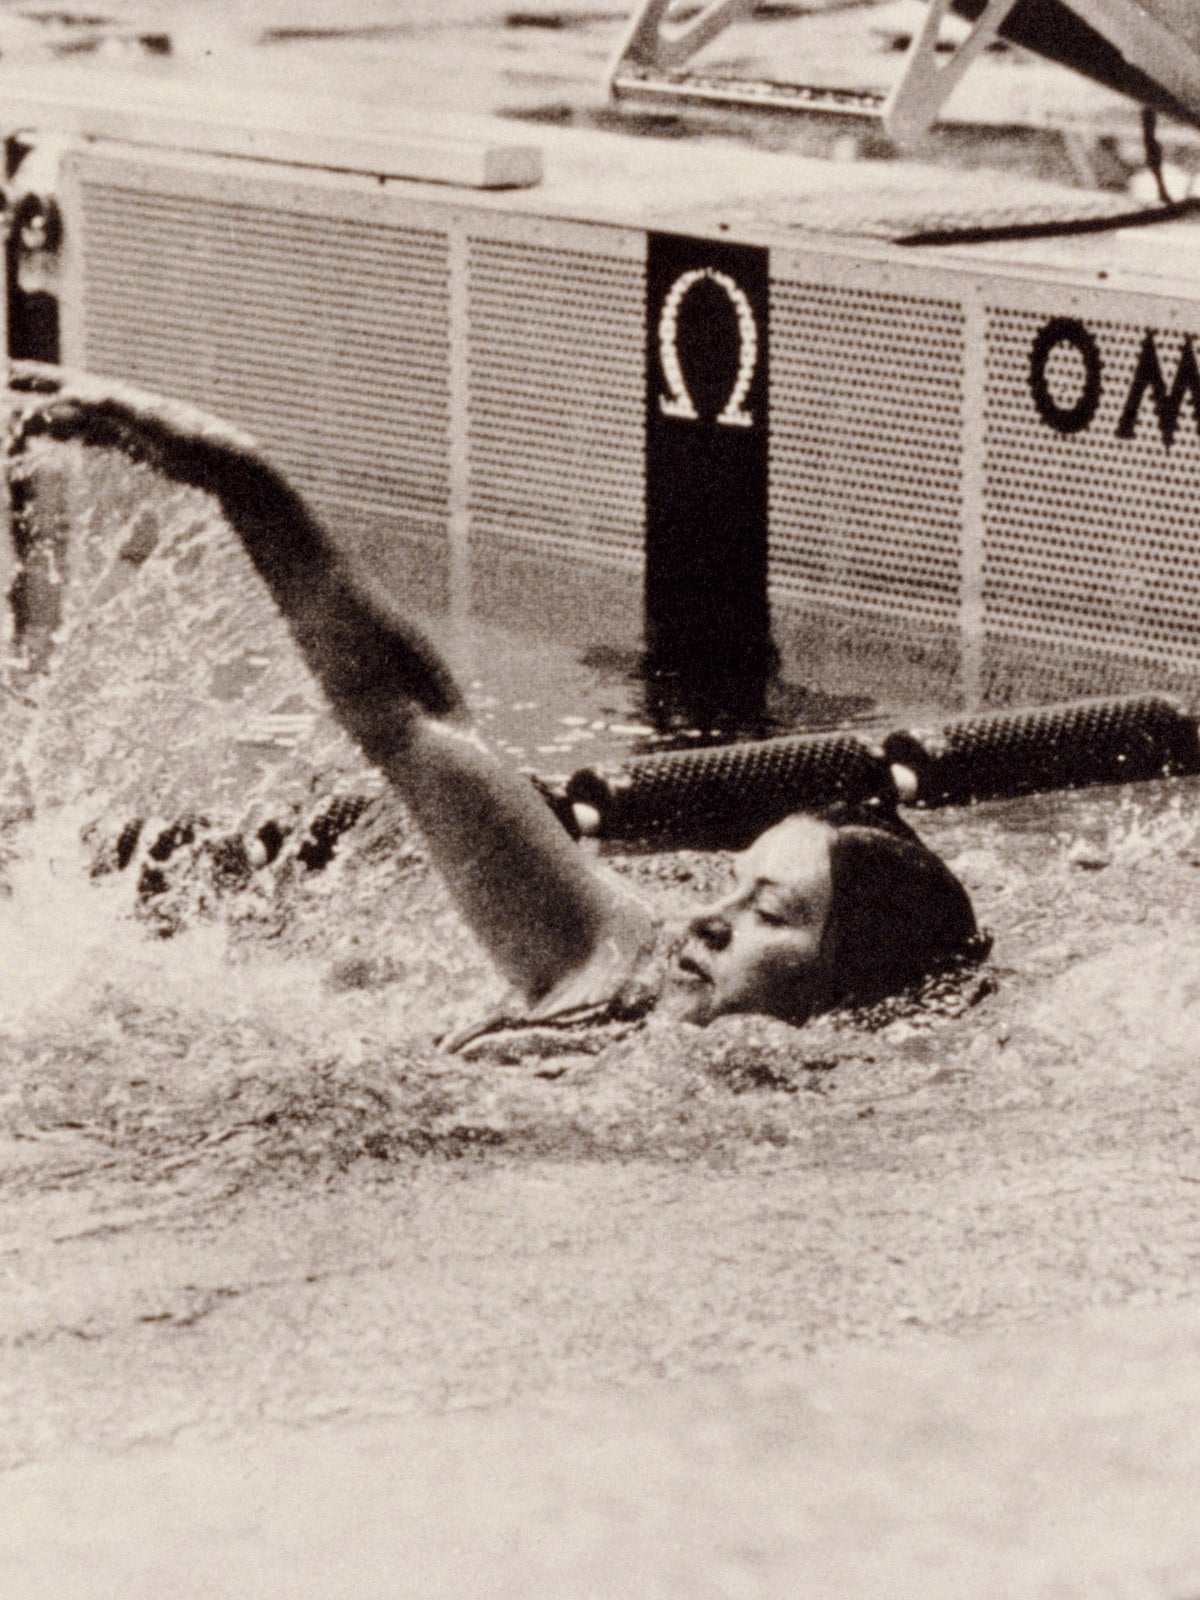 Swimmer in a swimming pool in a black and white photo